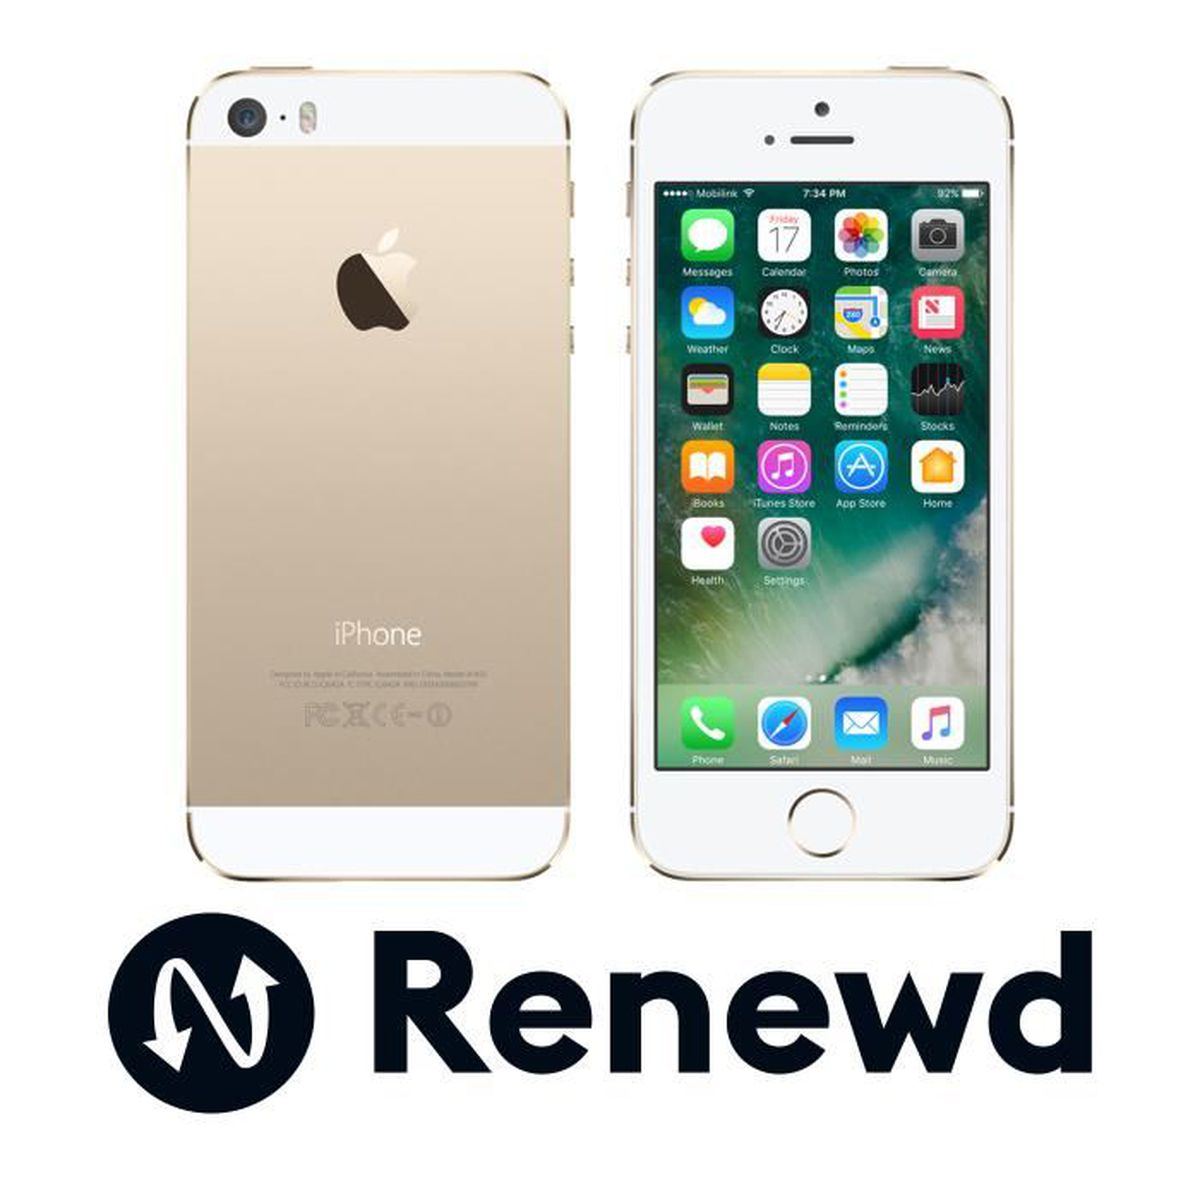 Renewd Apple iPhone 5S recondionné - 16GB Or, 10,2 cm (4